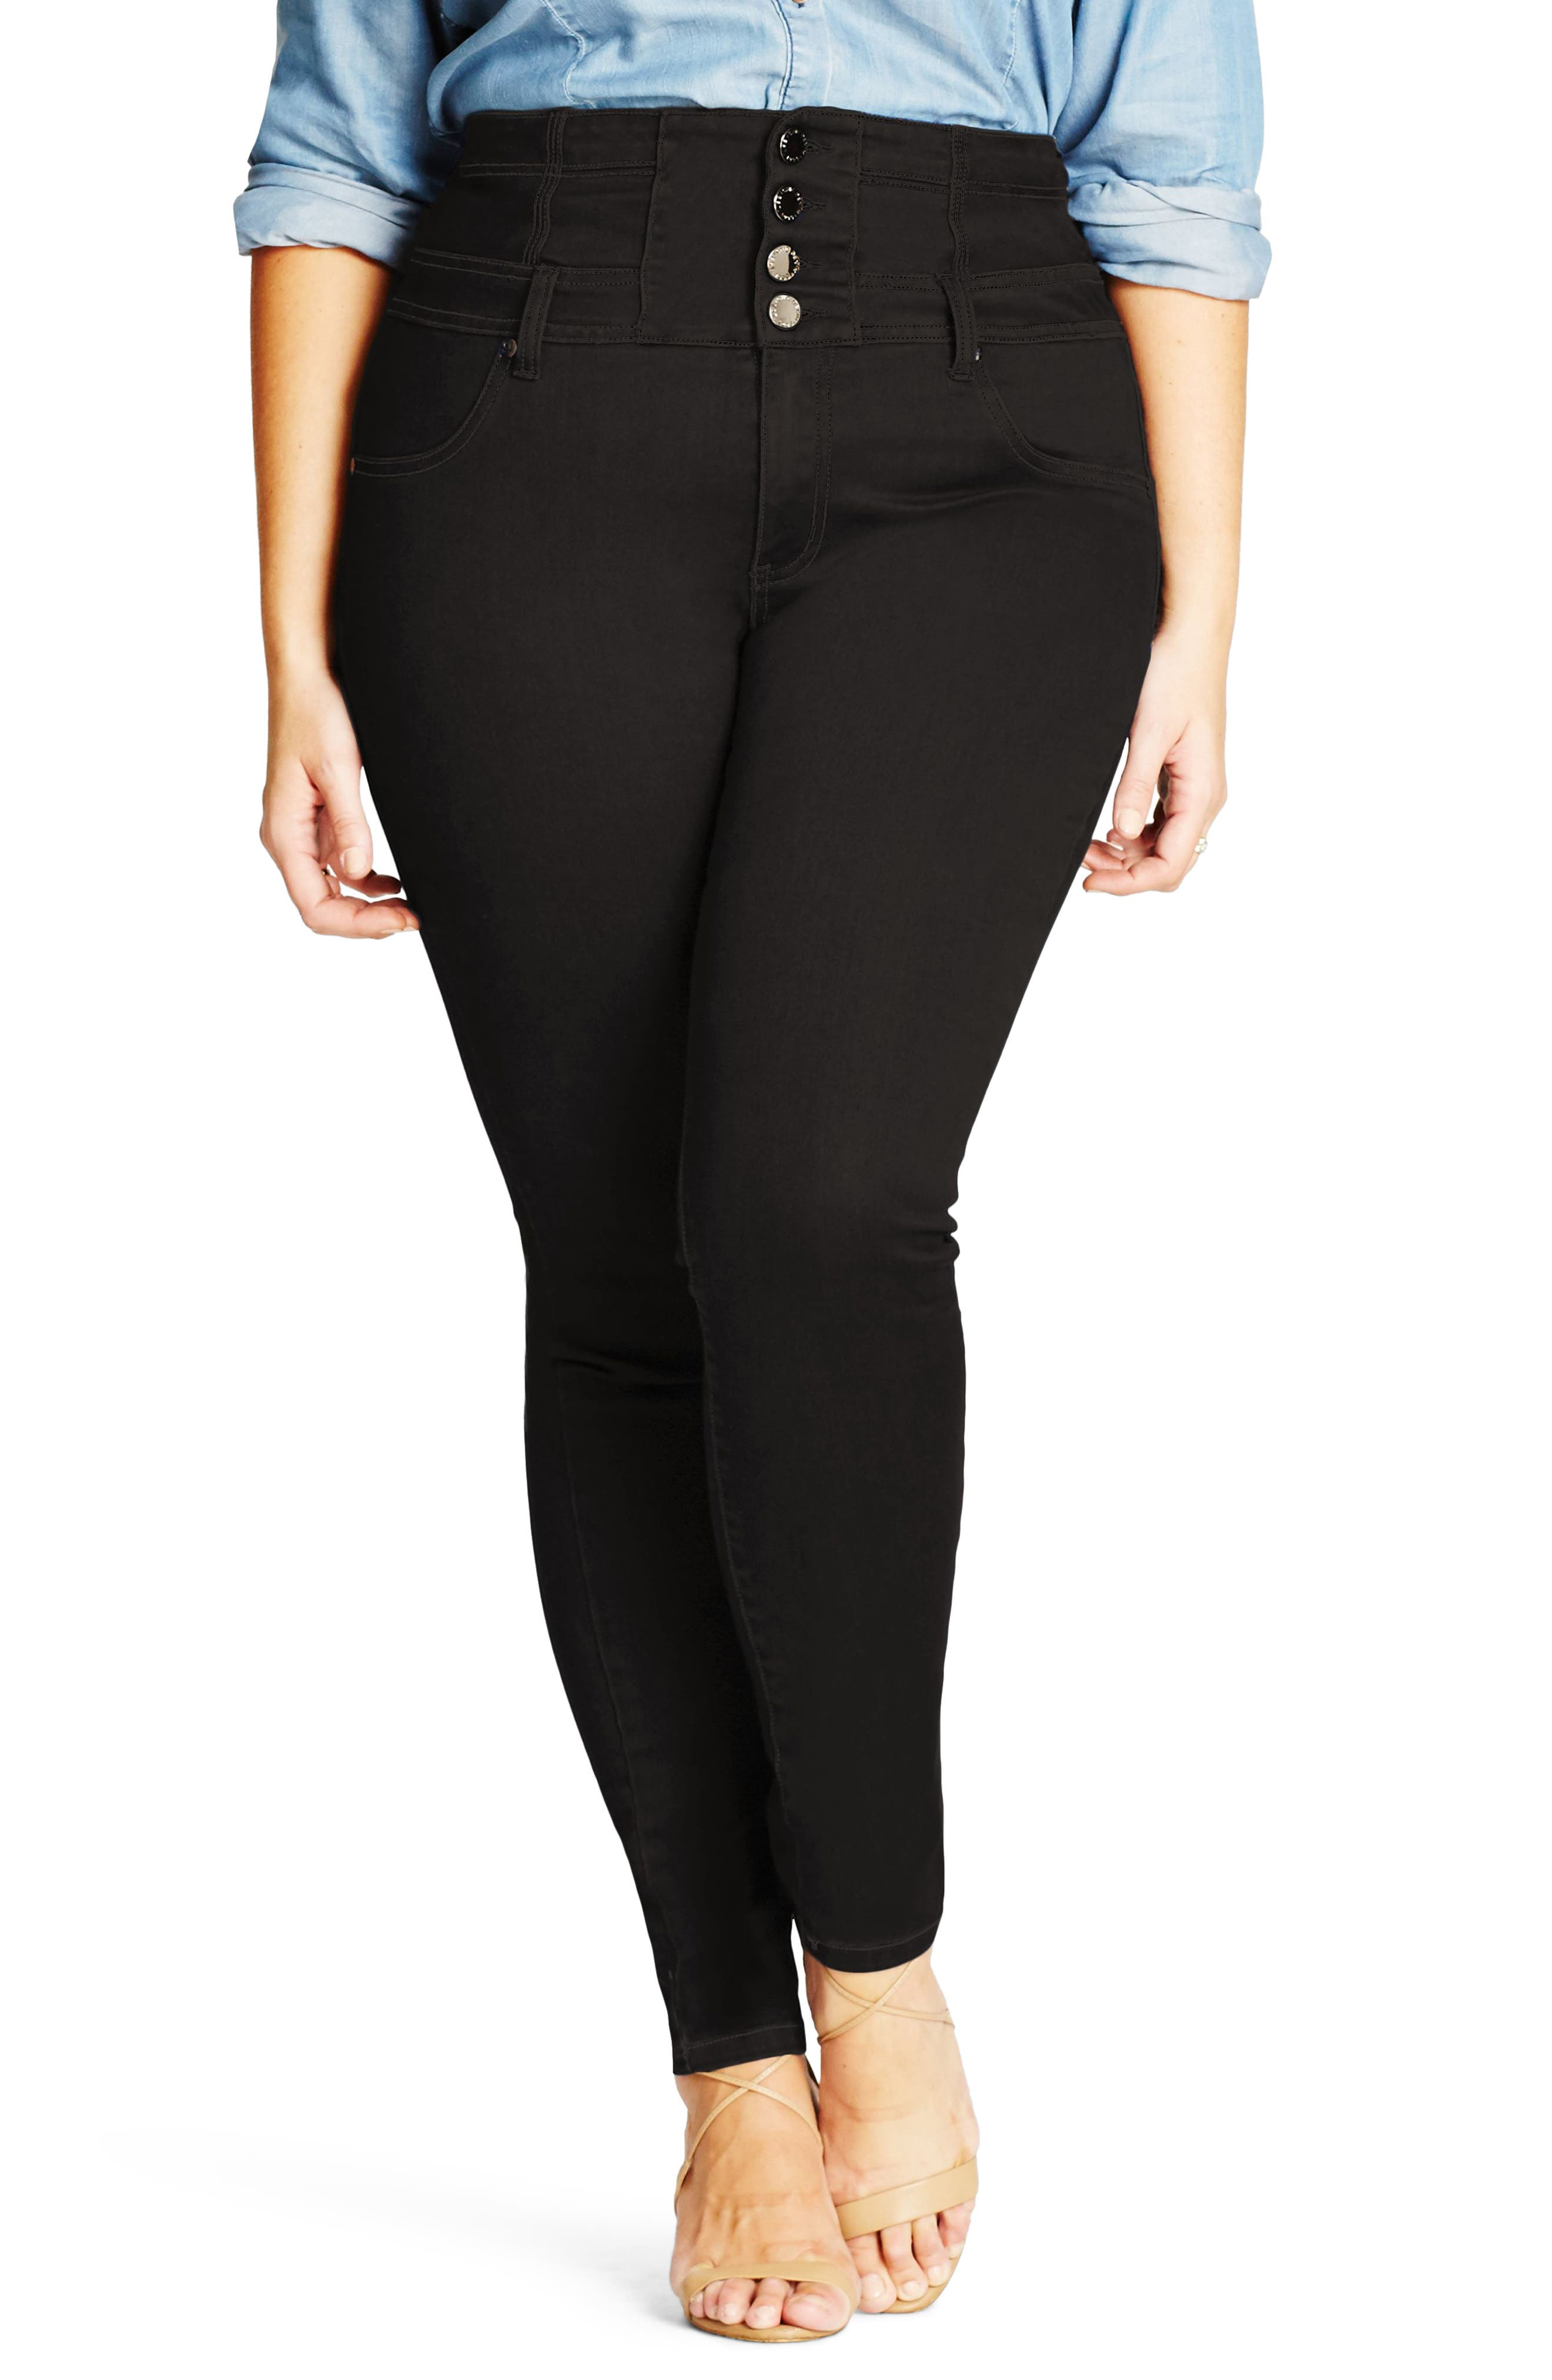 City Chic Harley Corset Skinny Jeans (Plus Size)